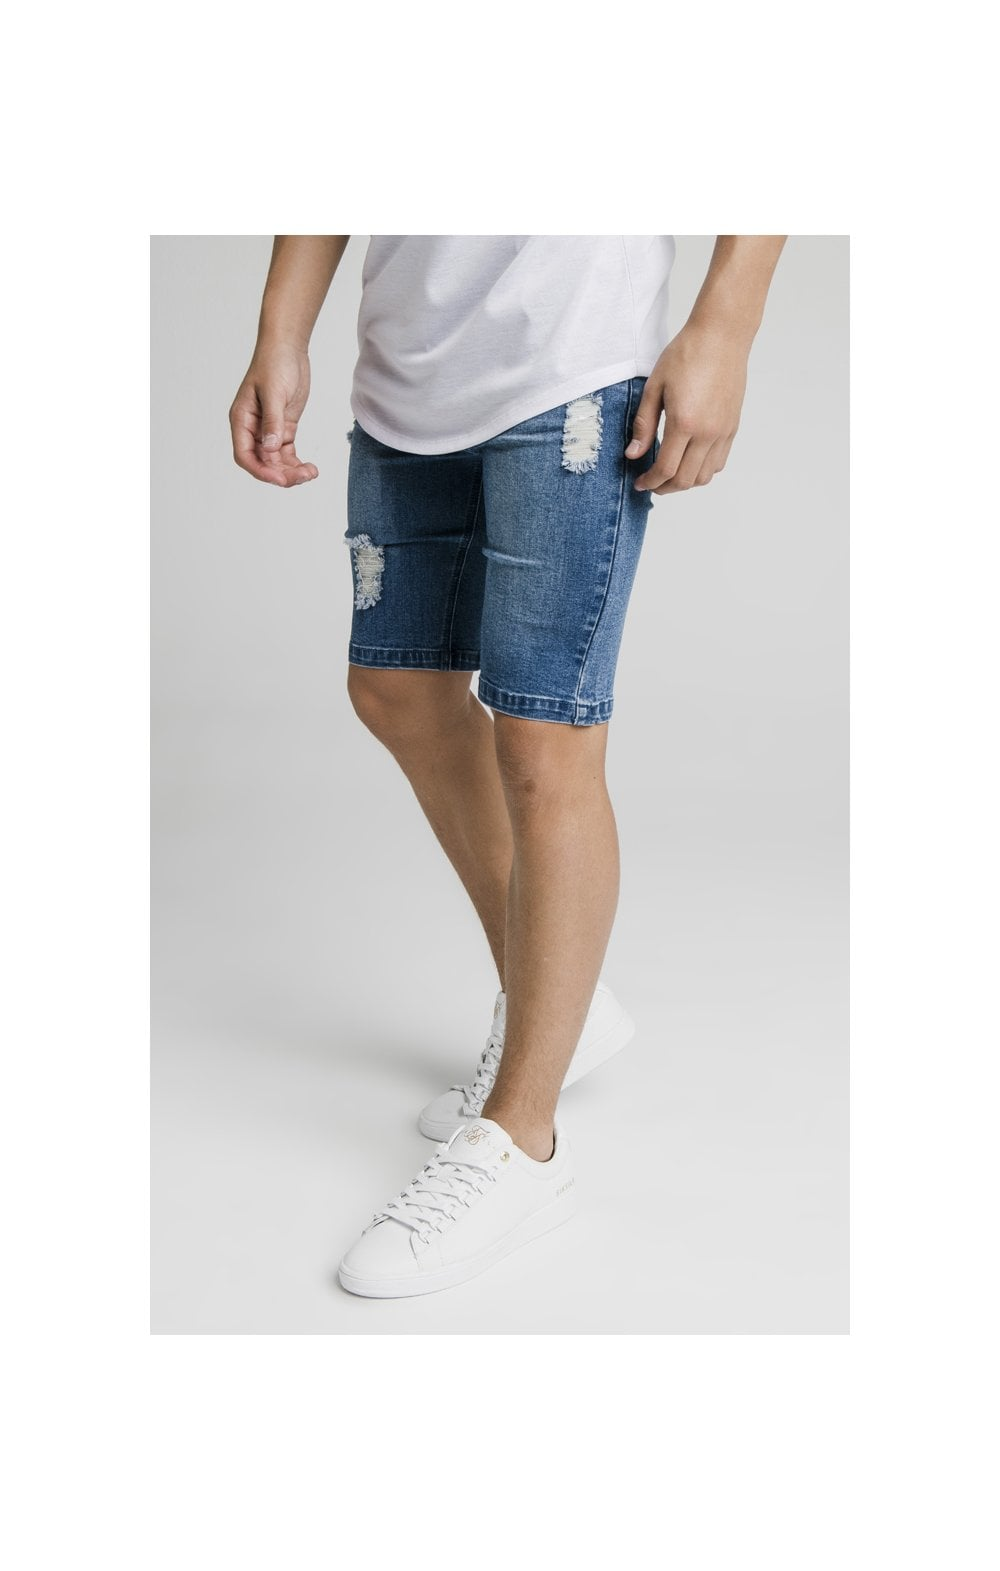 Illusive London Distressed Denim Shorts - Midstone (1)